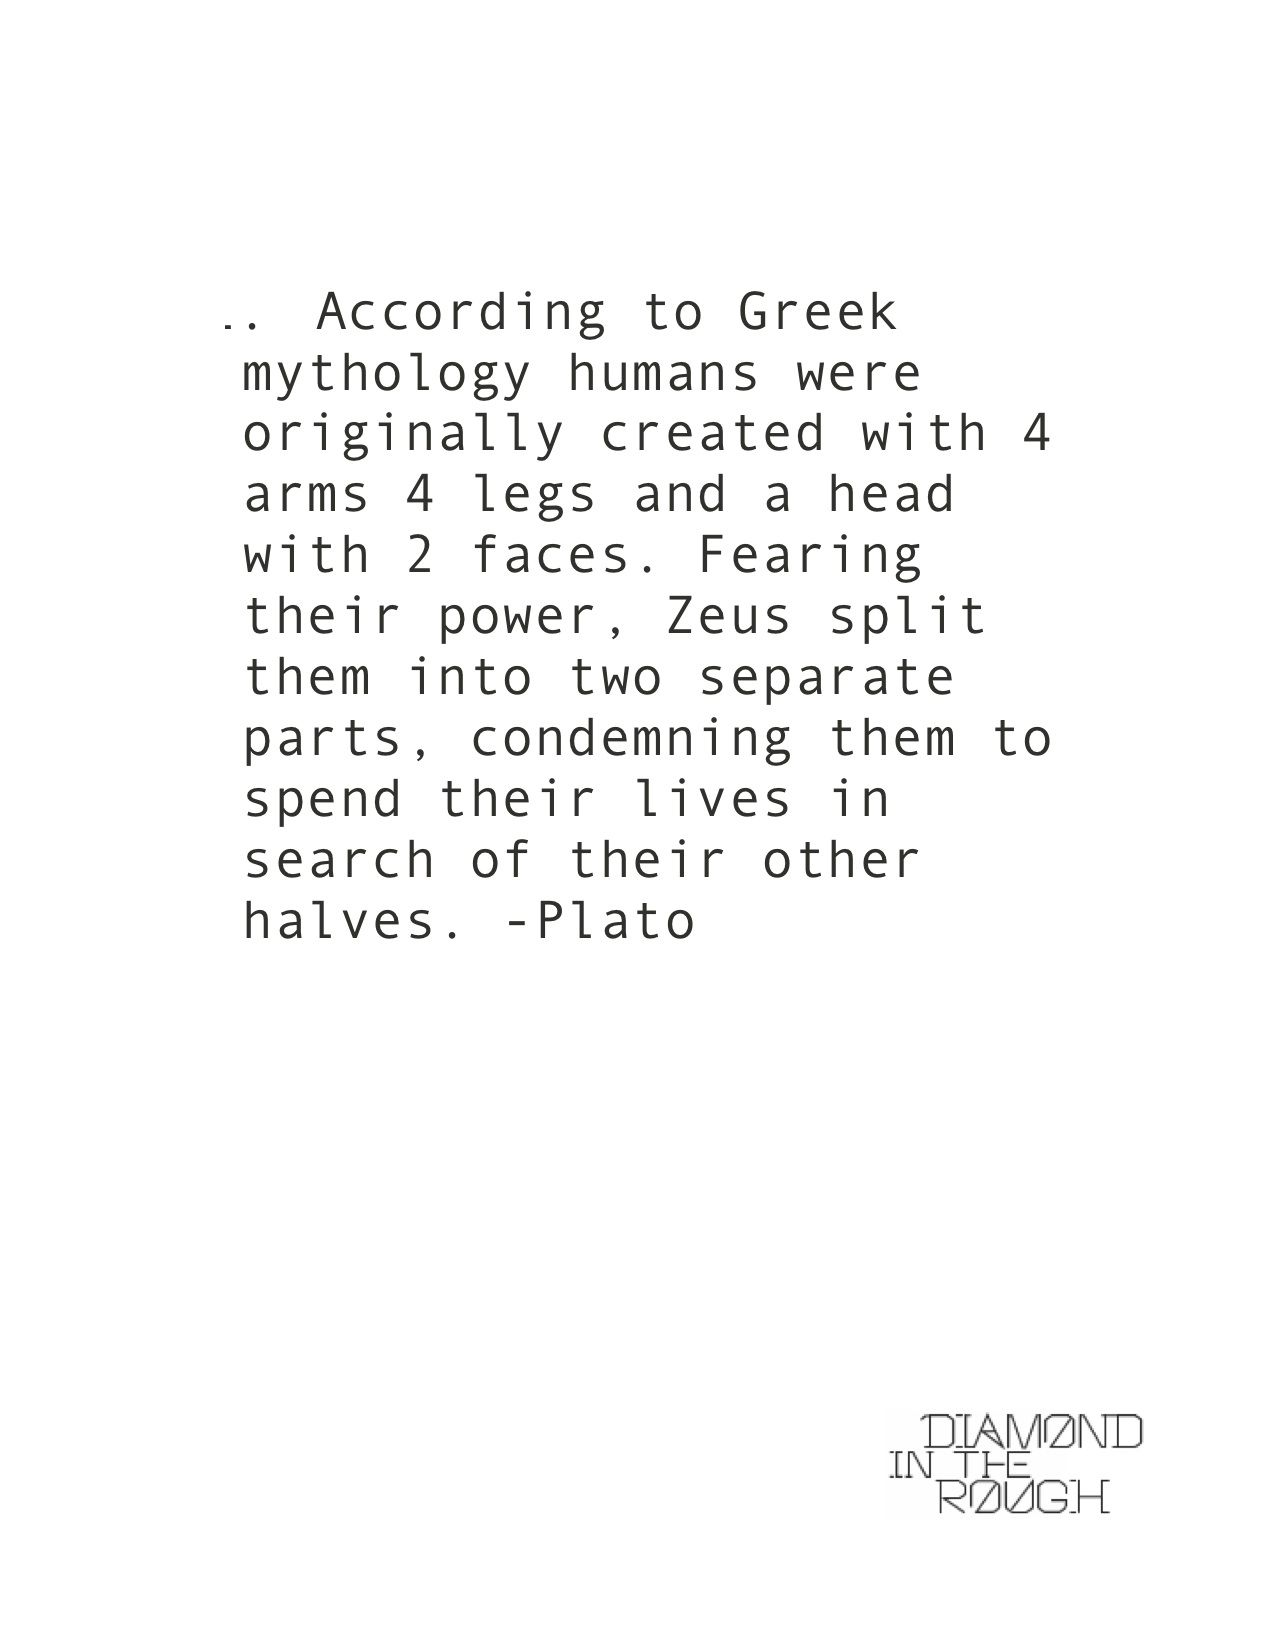 Search Love Quotes Greek Mythology Plato Love Quote  Romantic Wedding  Pinterest